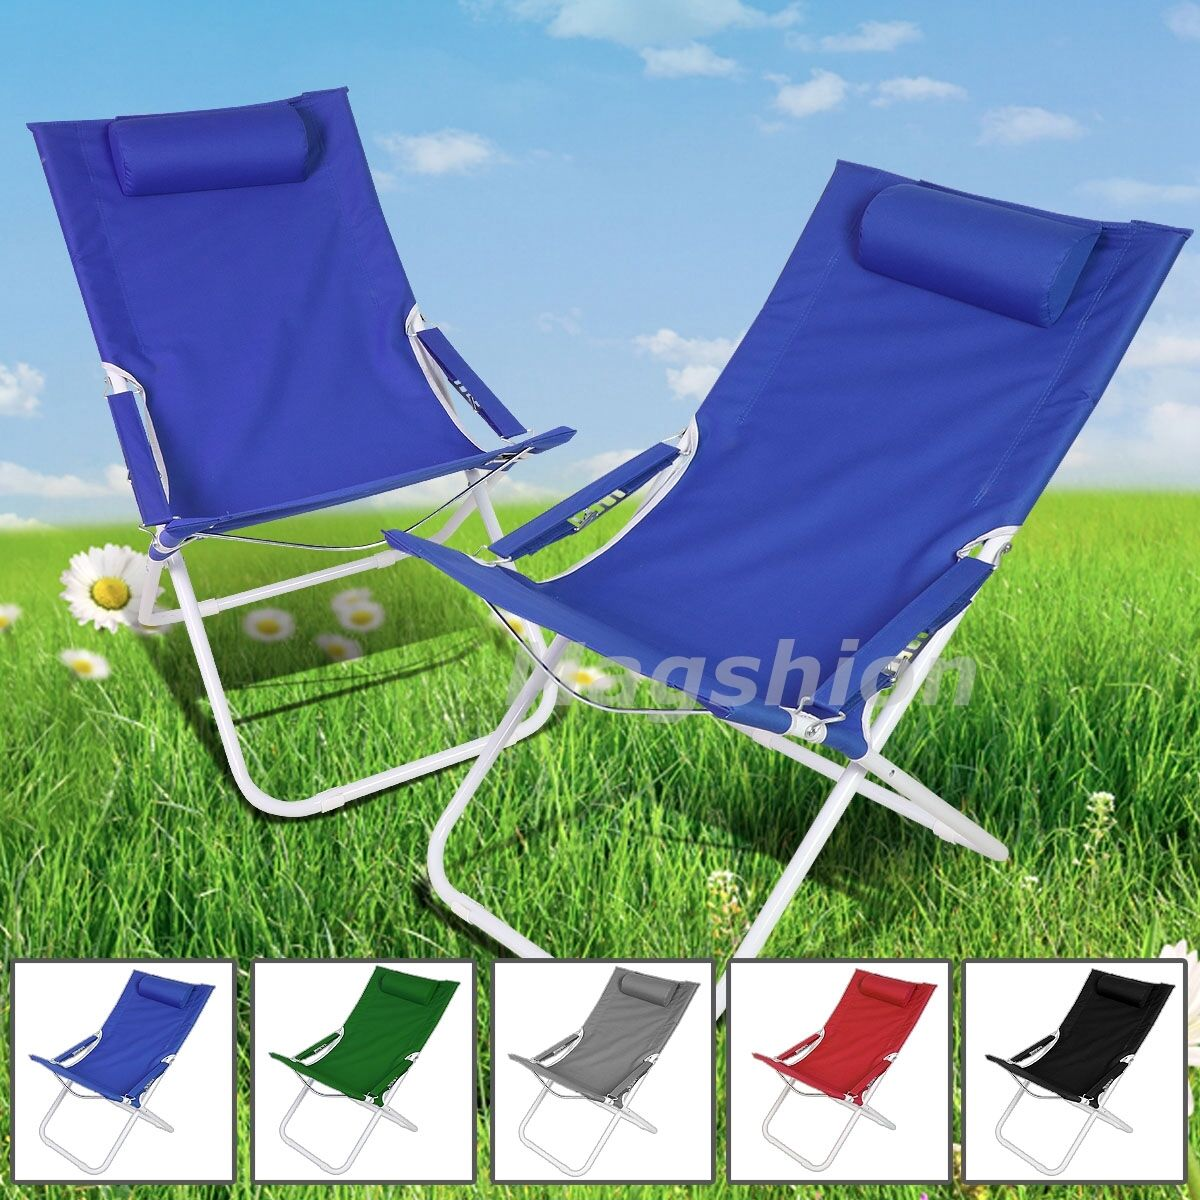 Blue Curved Chair Folding Lounge Reclining Patio Pool Beach